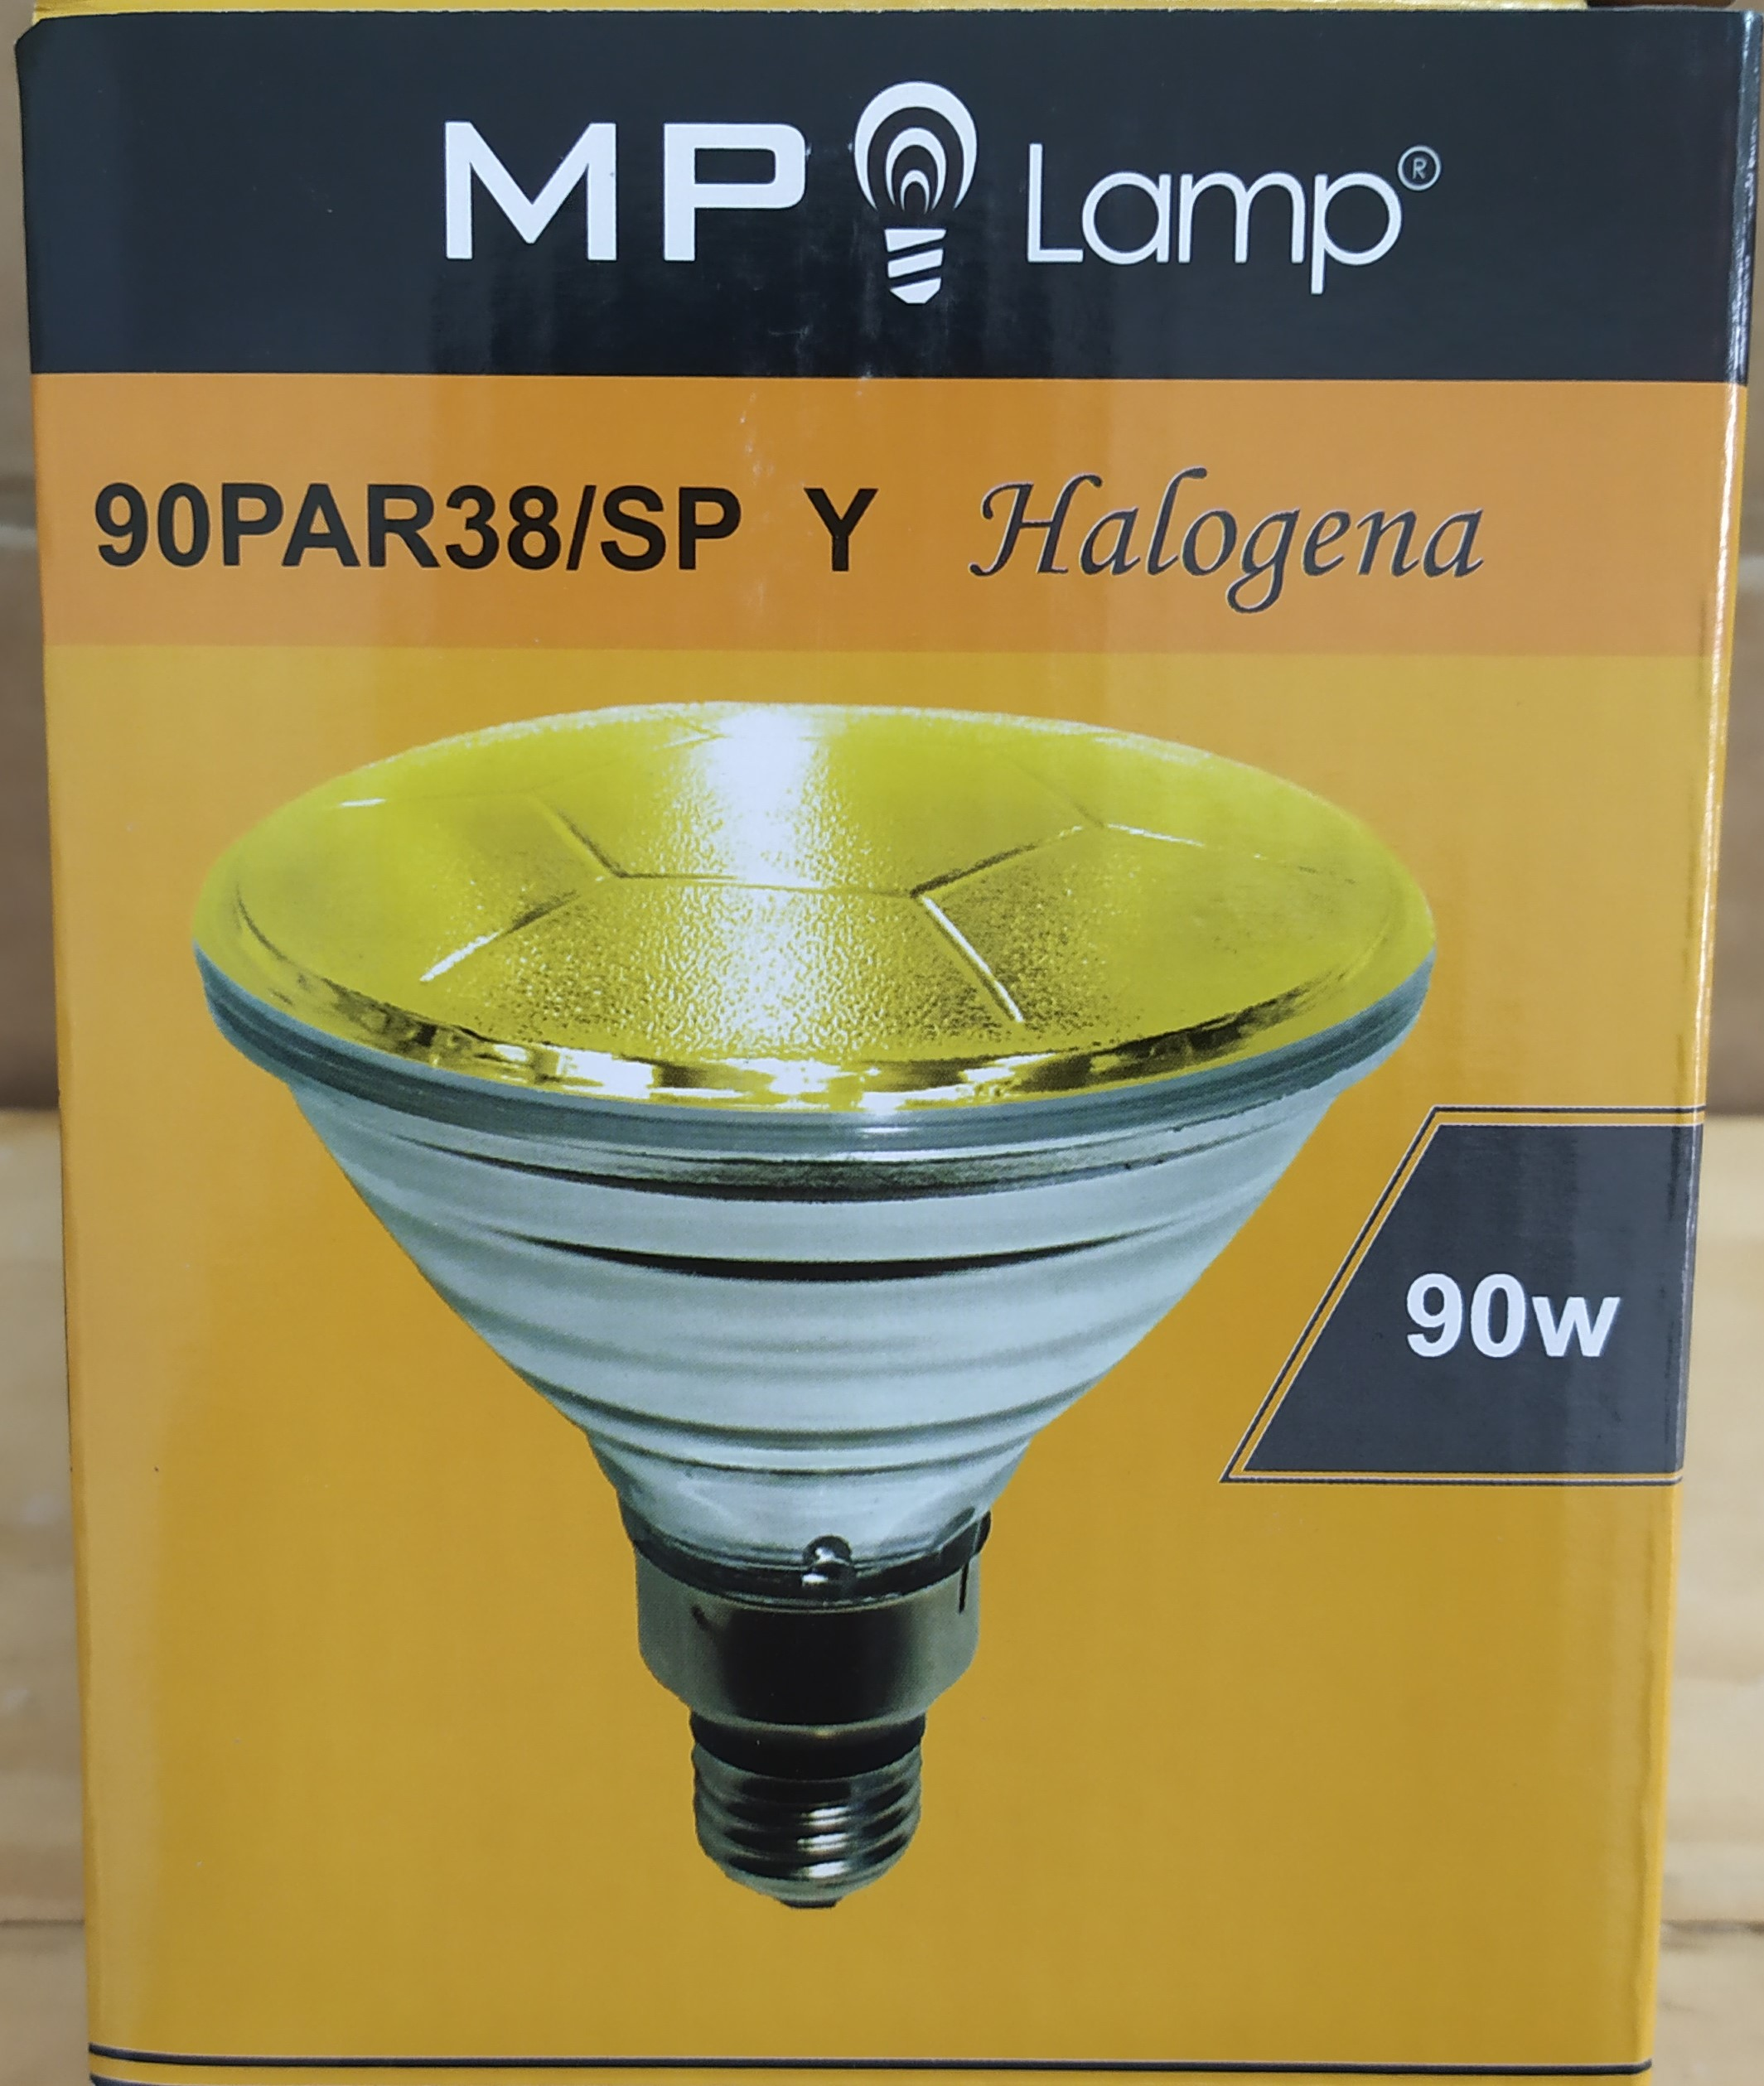 E16 LAMPARA HALOGENA 90PAR38/SP AMARILLA 90W R/E27 MP